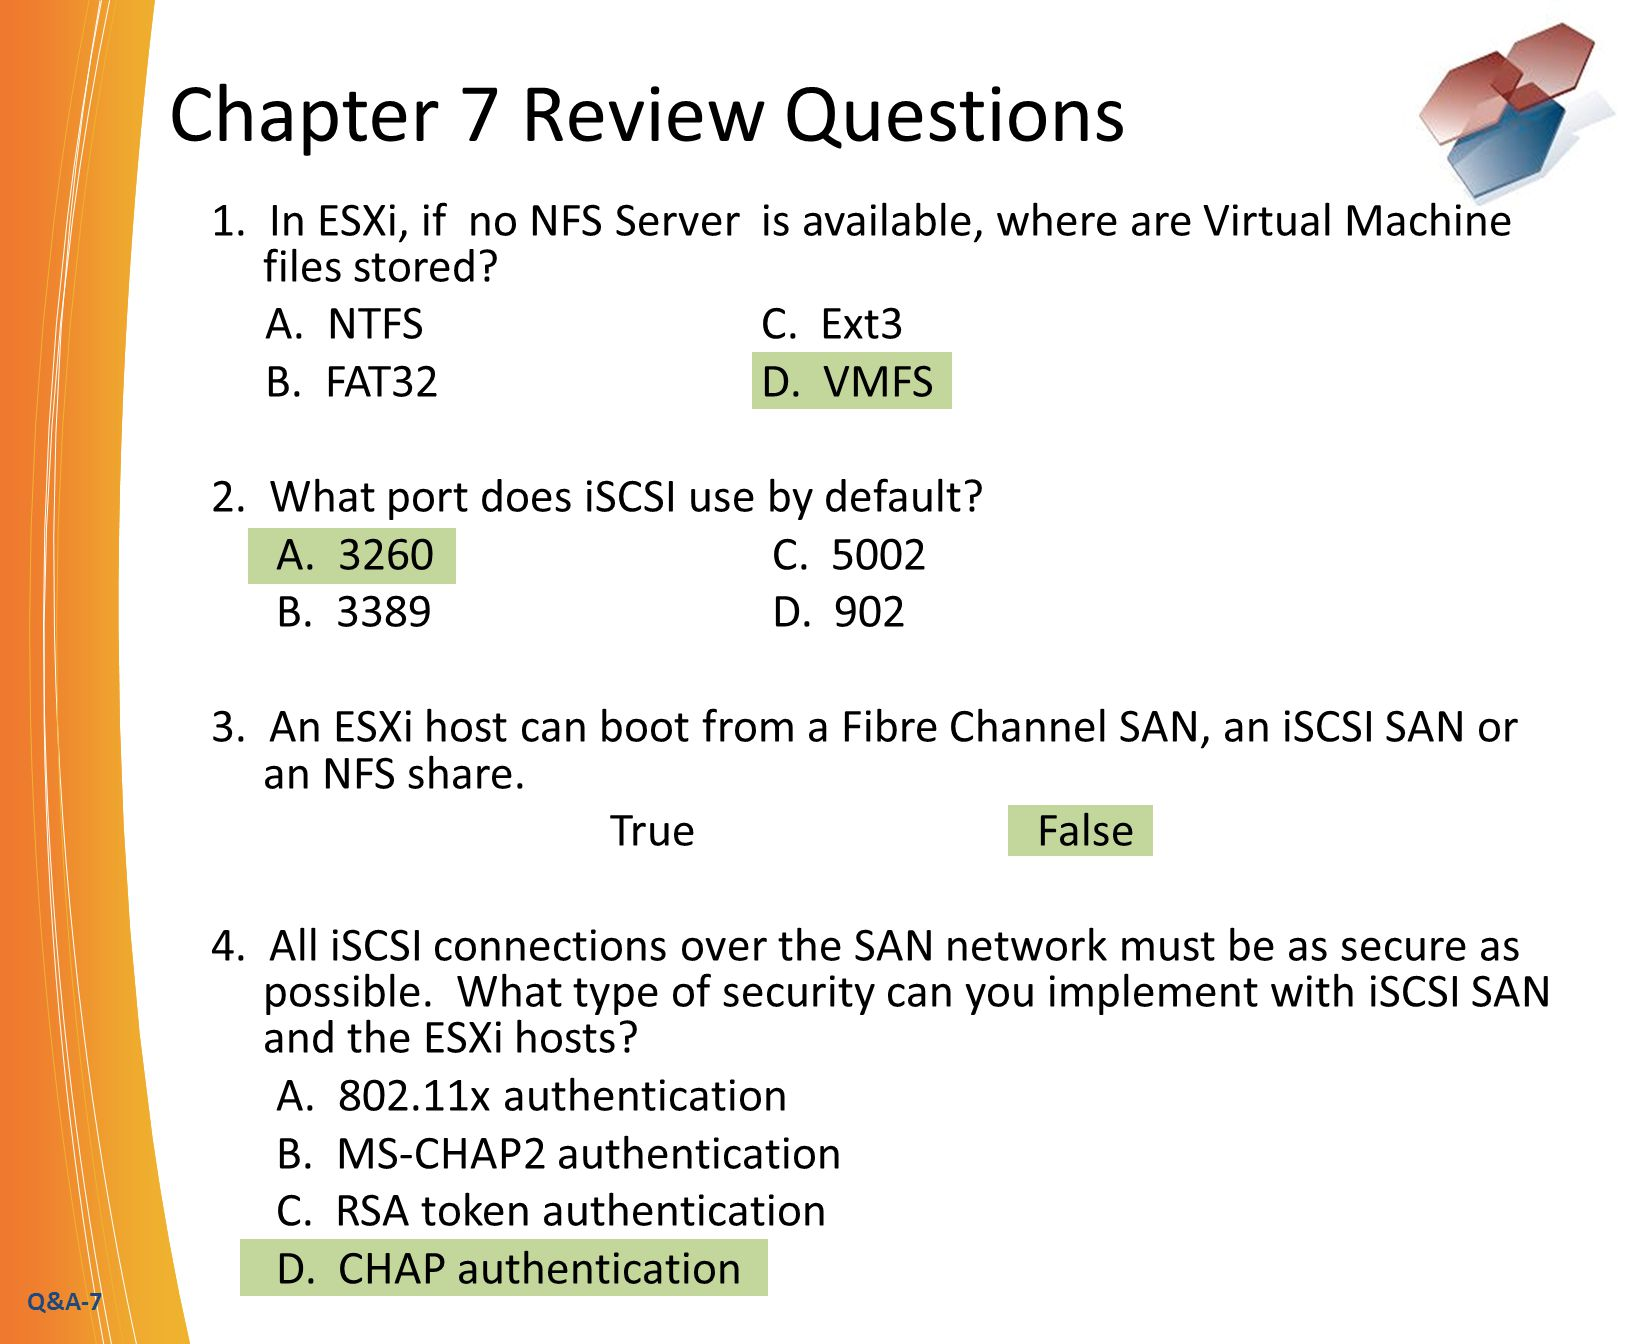 Q&A-8 Chapter 7 Review Questions 5.